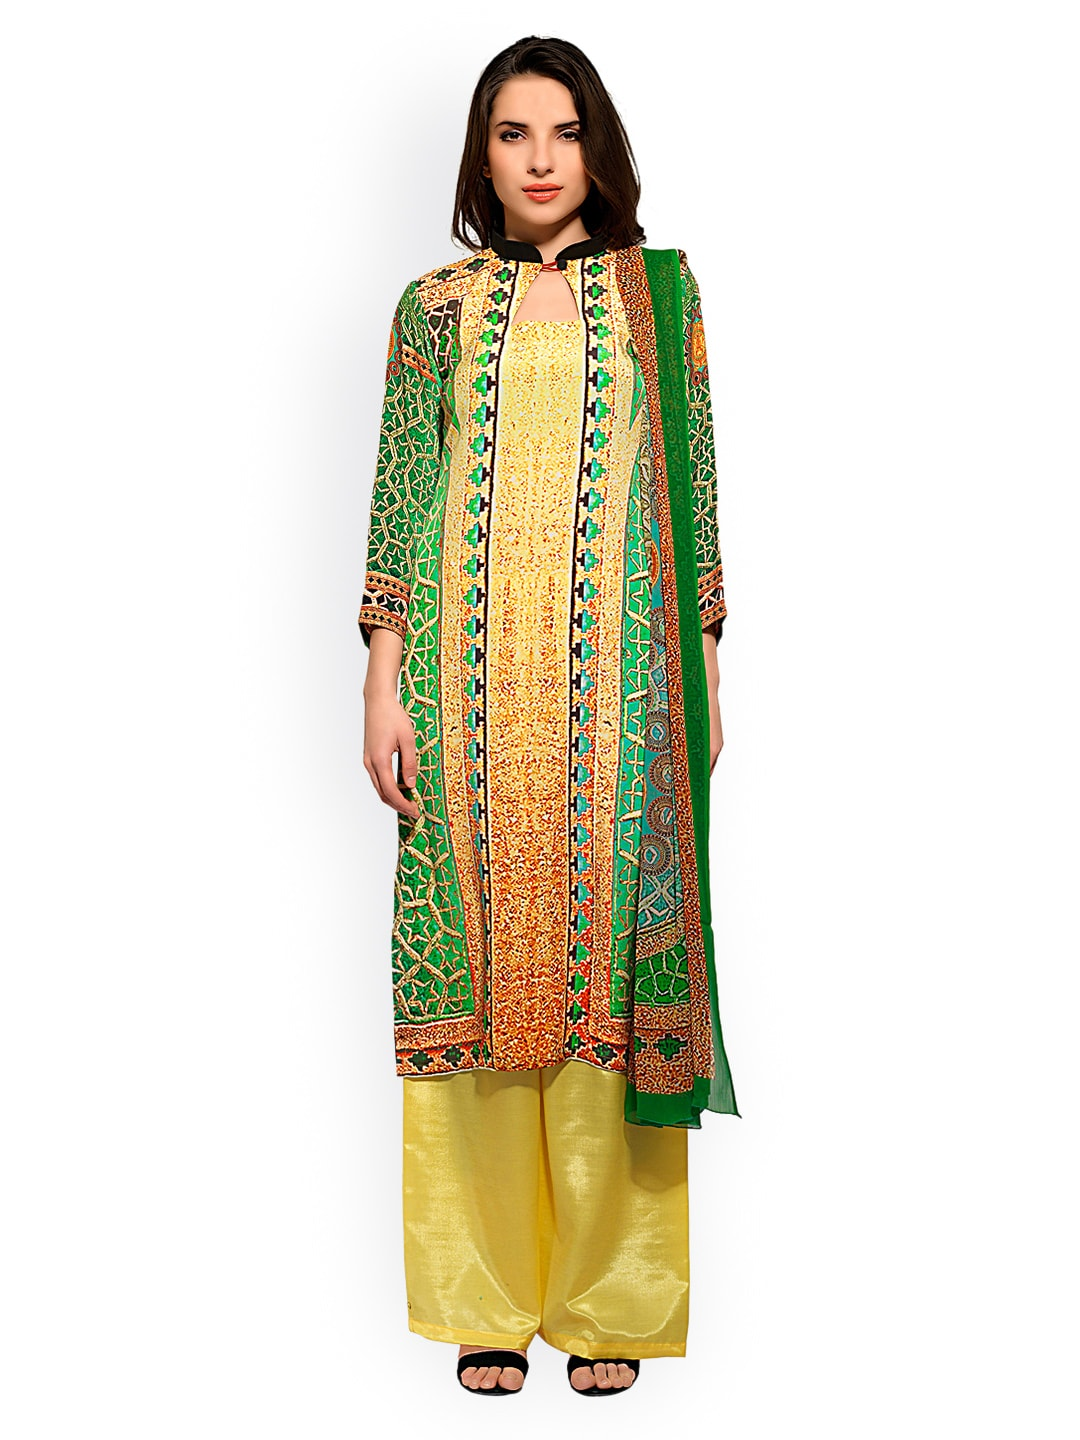 Bhelpuri Green & Yellow Printed Crepe Unstitched Dress Material image